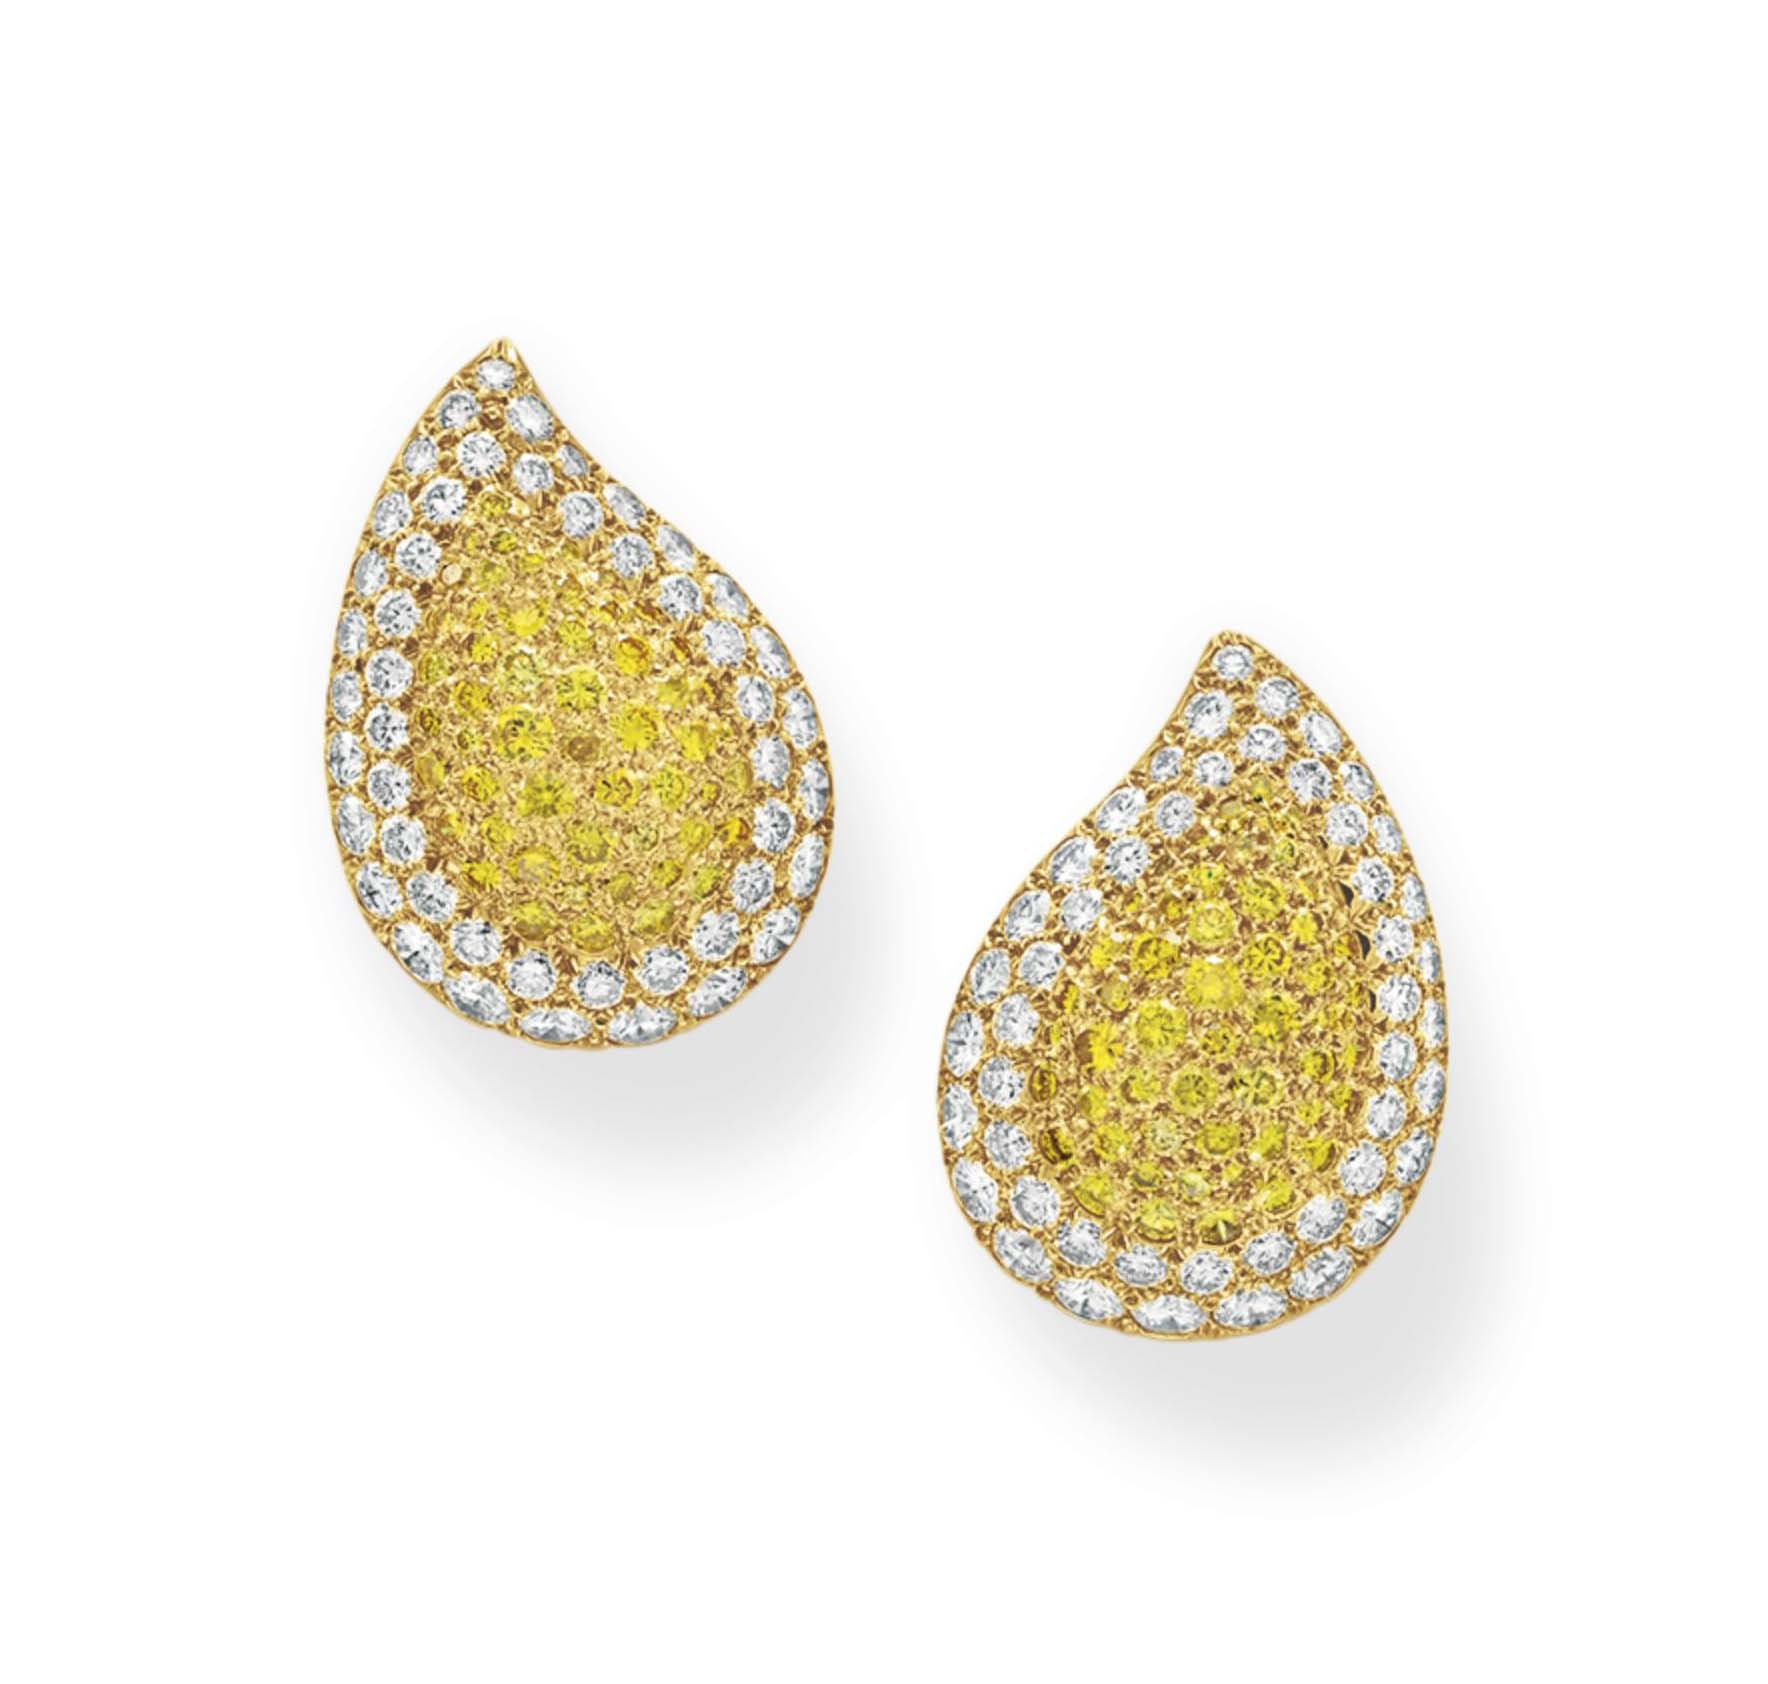 A PAIR OF COLORED DIAMOND AND DIAMOND EAR CLIPS, BY VAN CLEEF & ARPELS